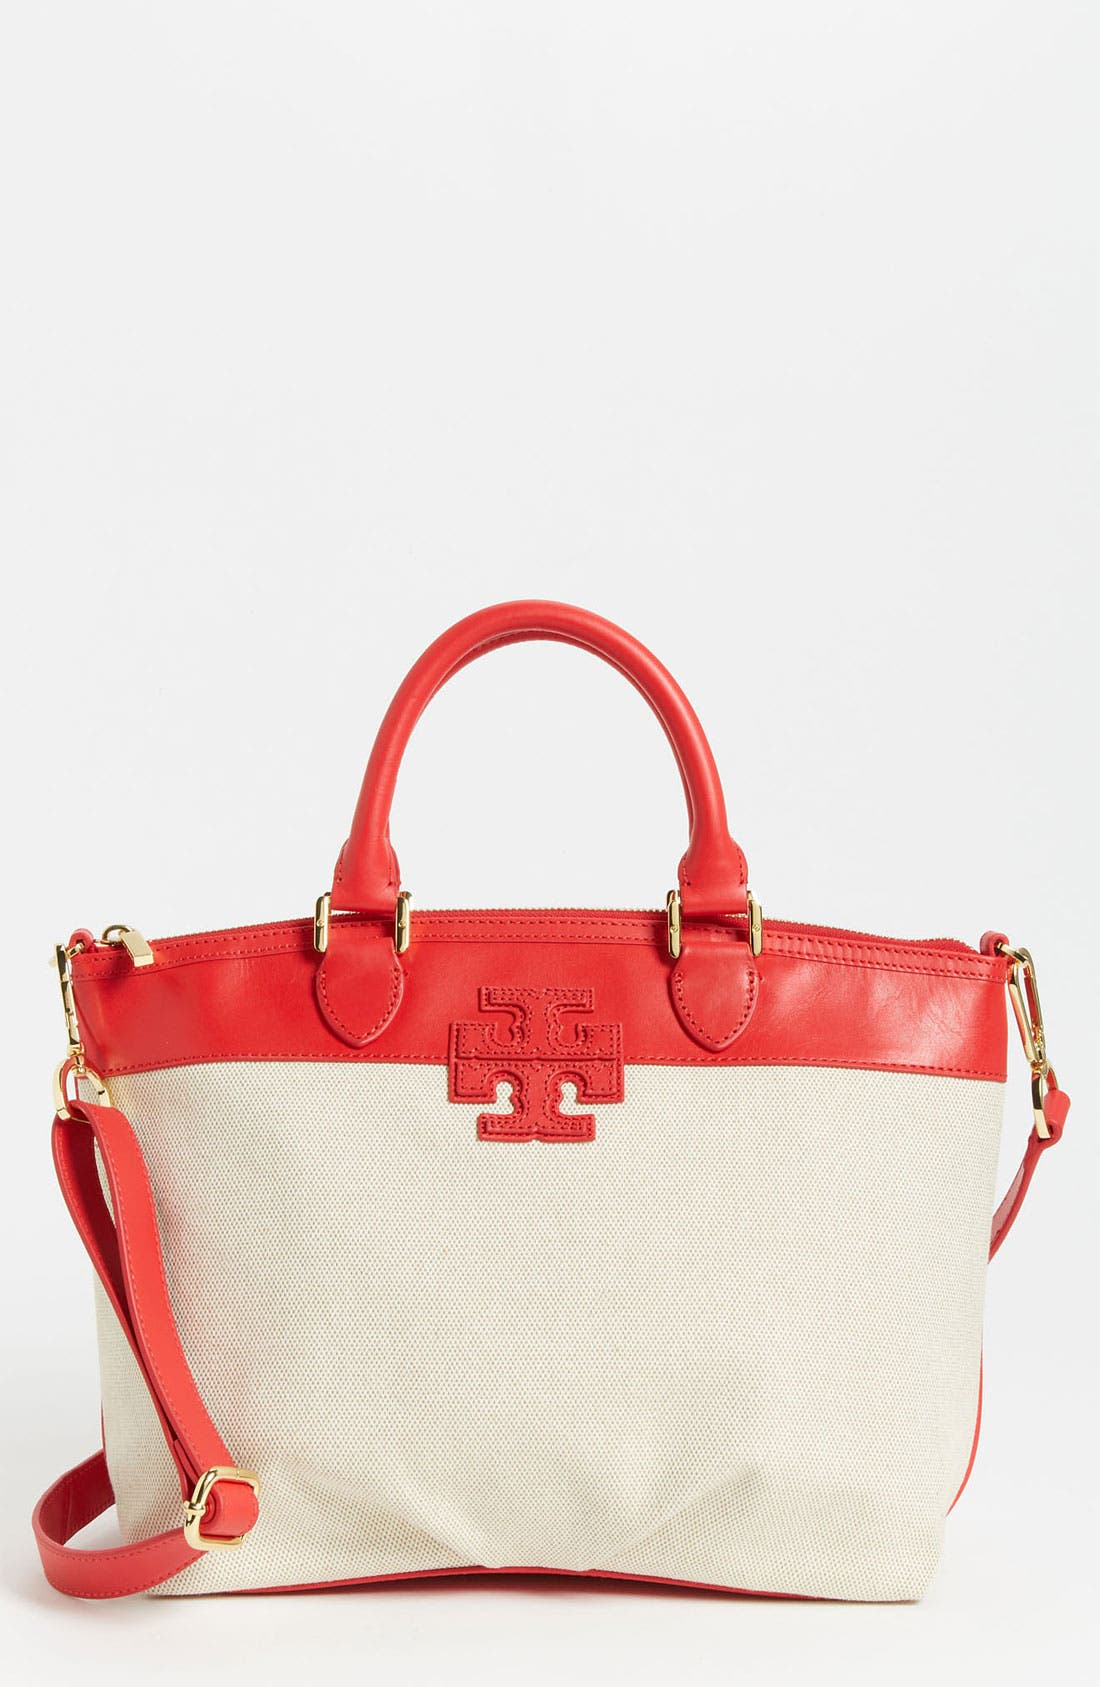 Main Image - Tory Burch 'Stacked T - Small' Satchel